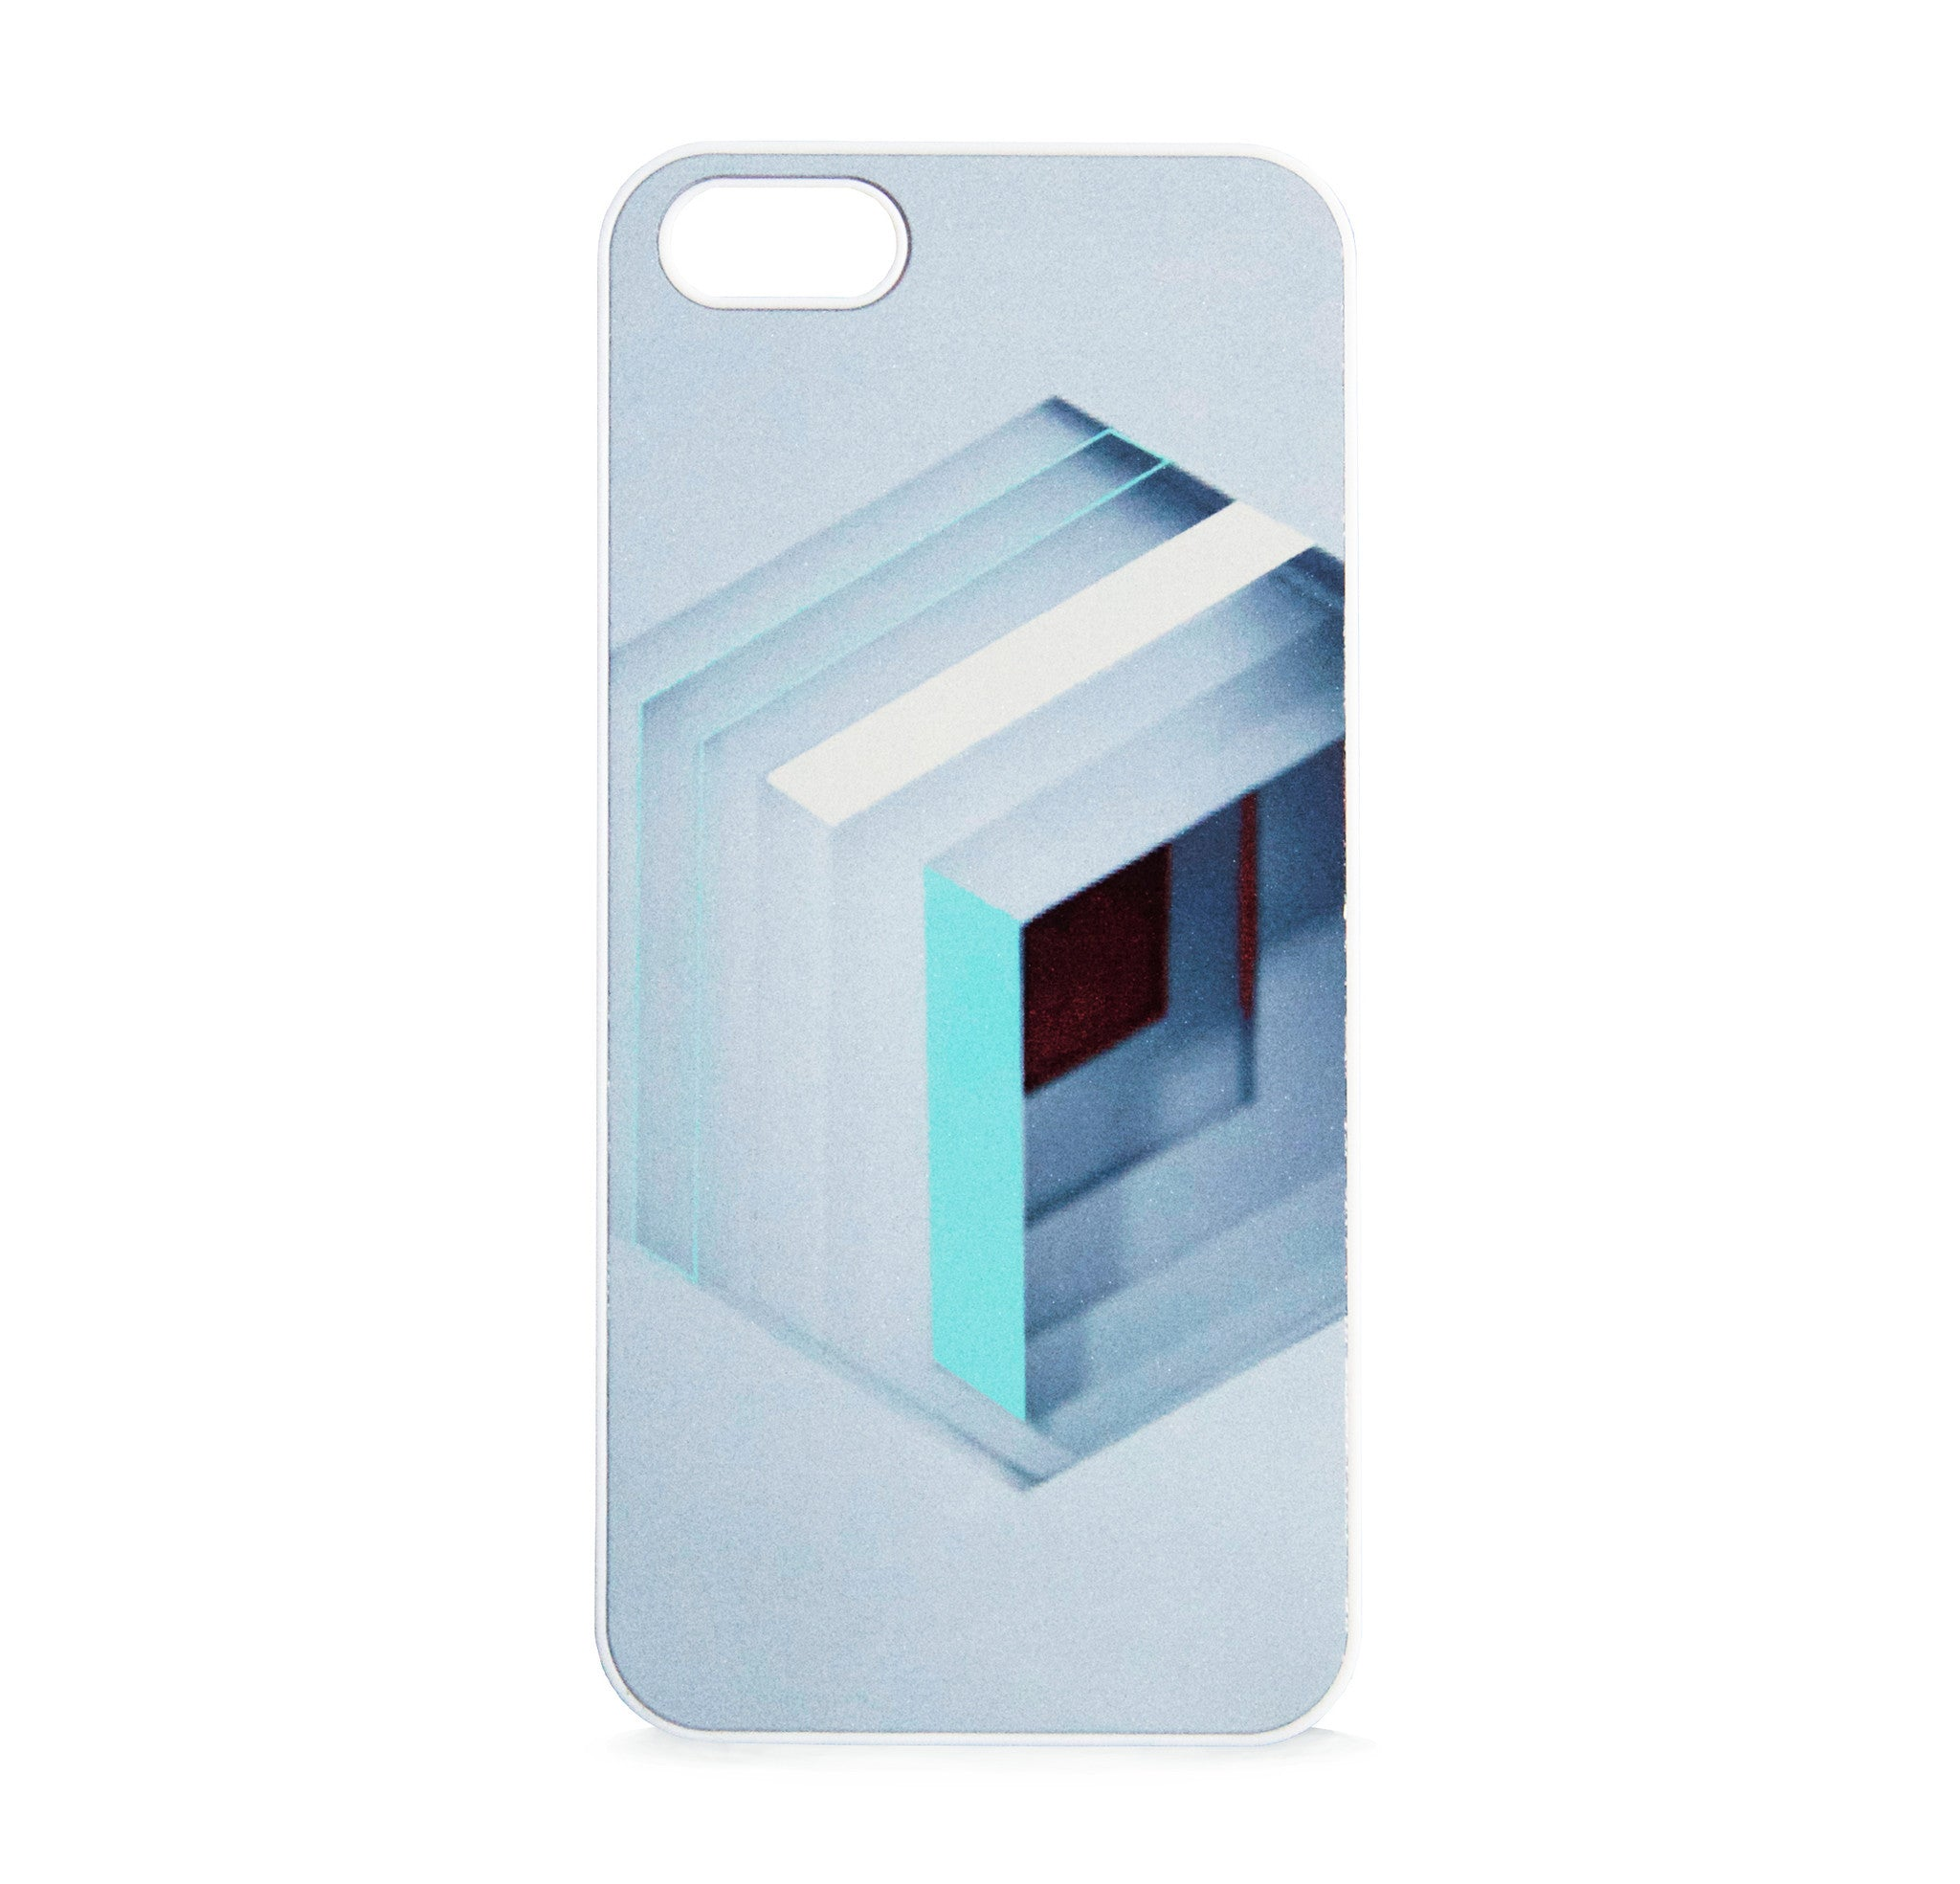 GEO ABSTRACT SQUARE FOR IPHONE 5/5S, IPHONE SE